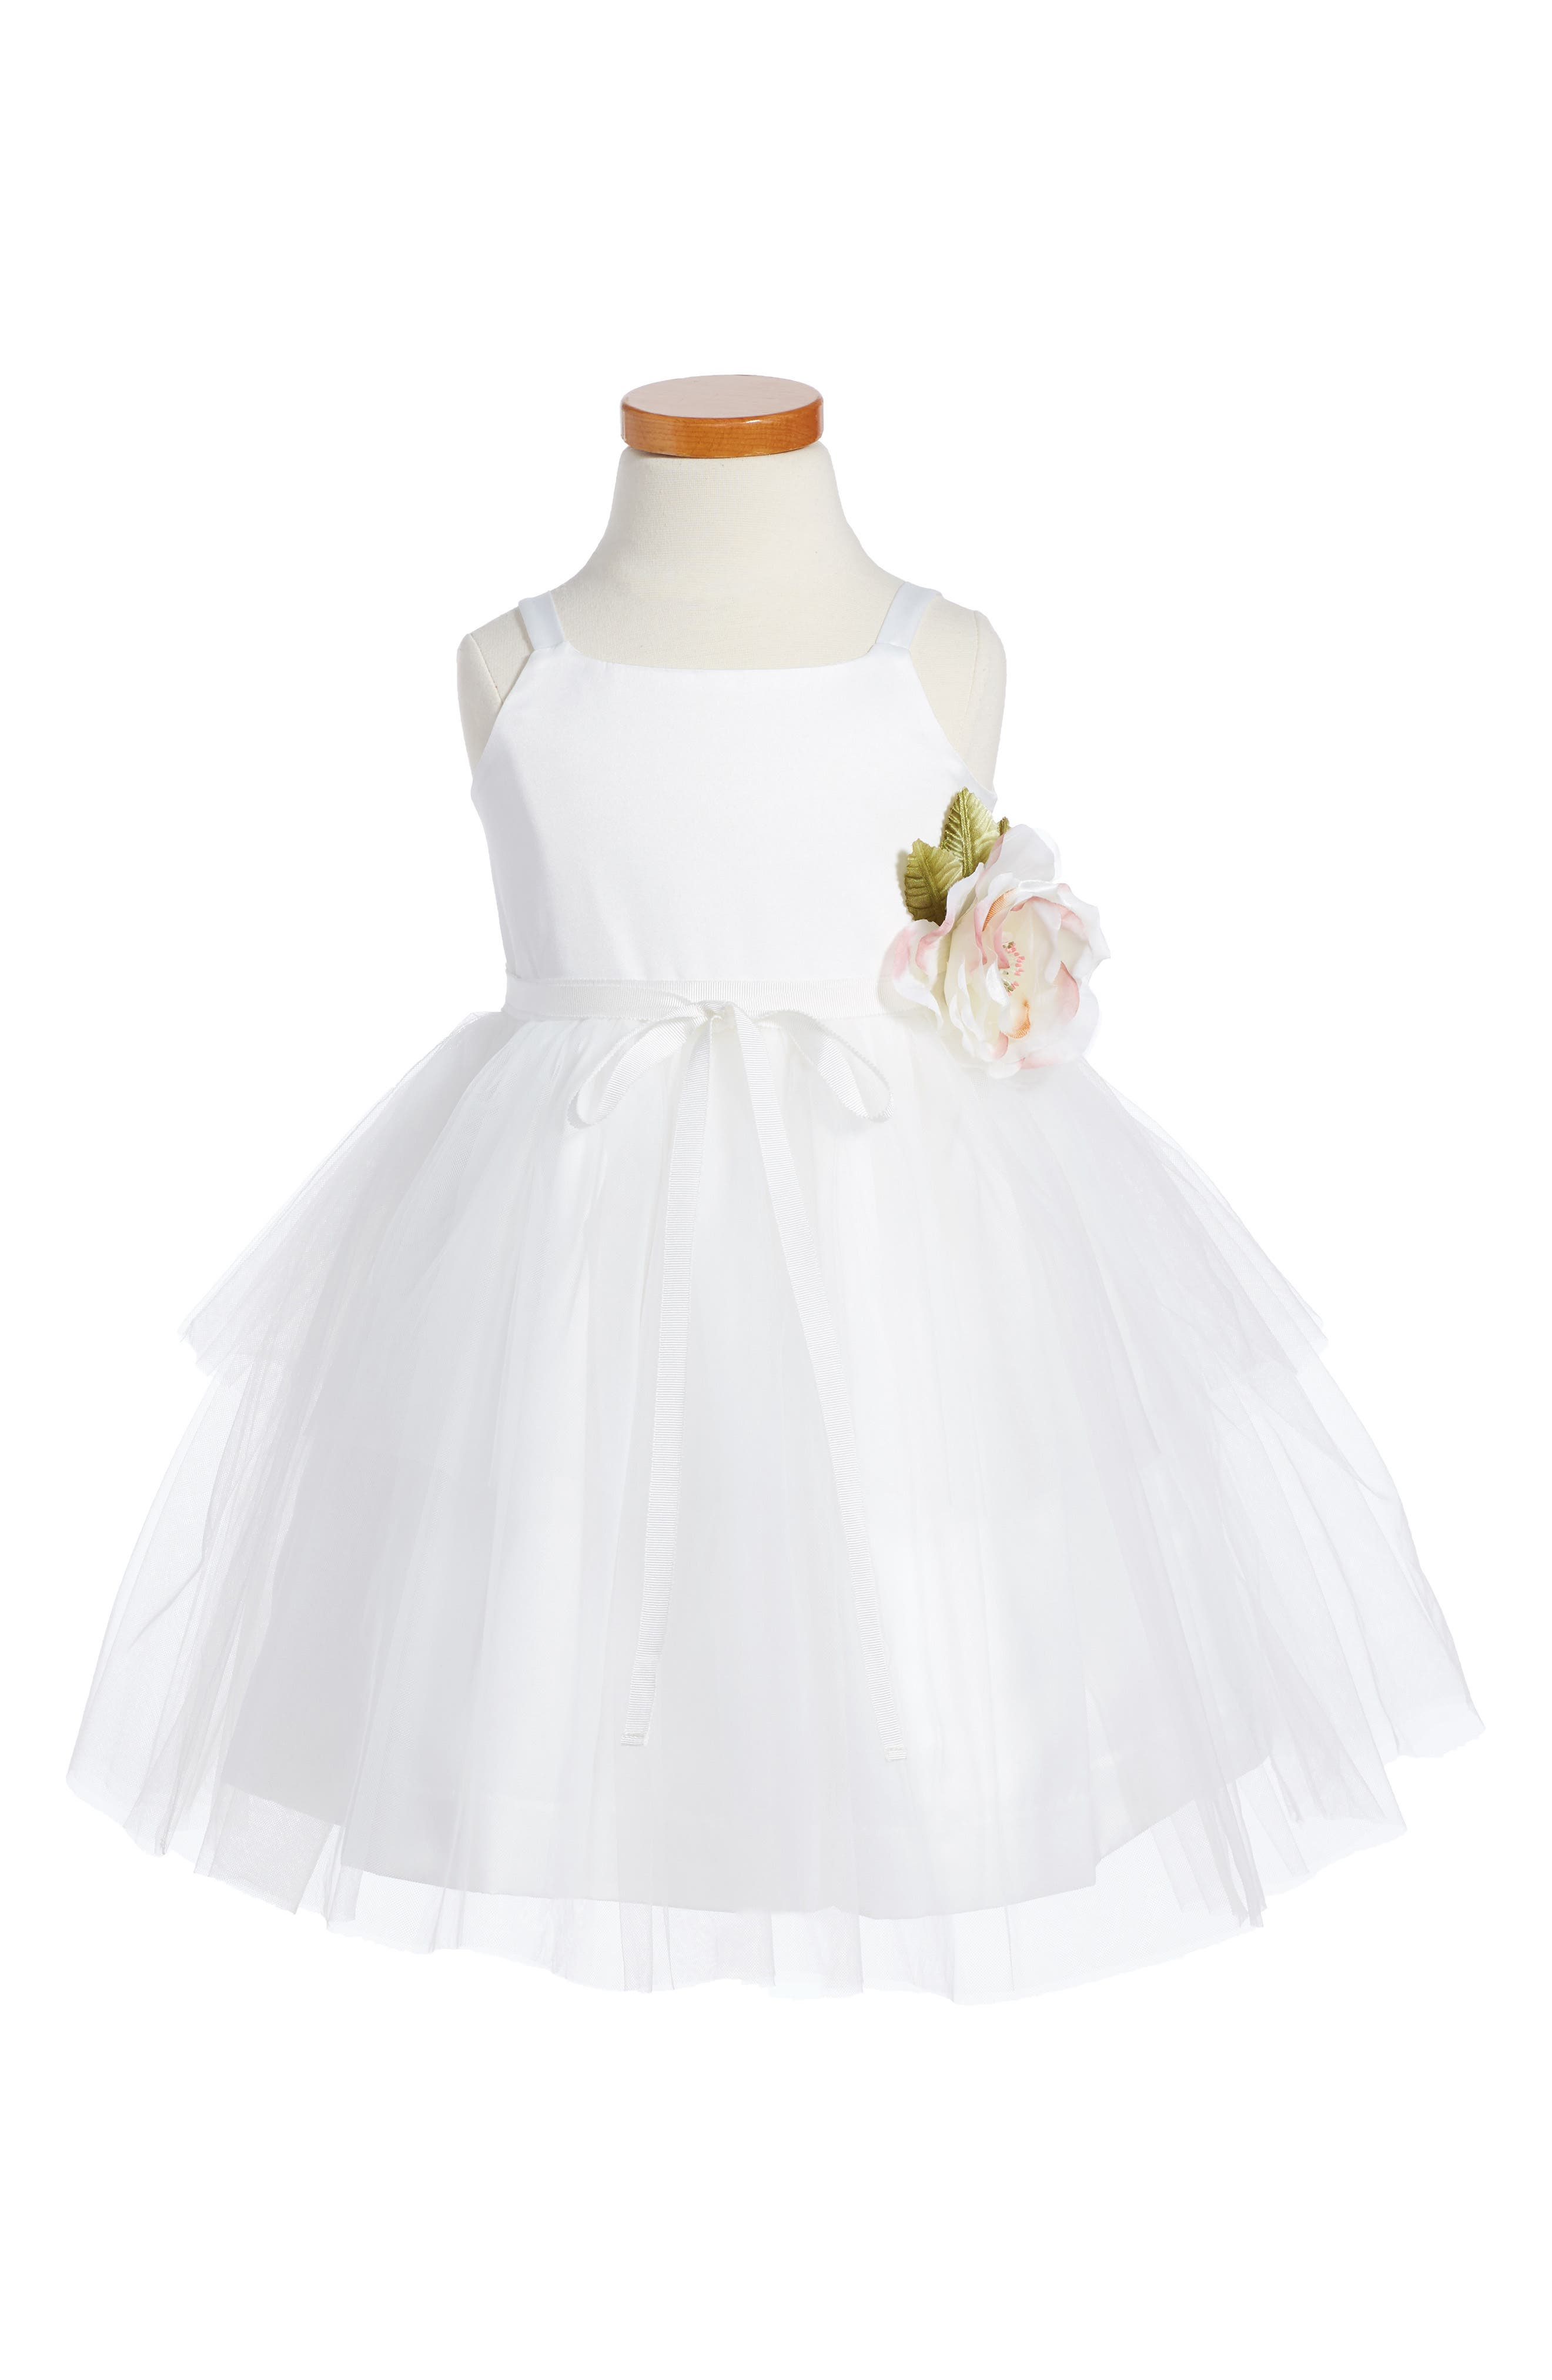 5dddef3cef408 Girls' Special Occasions: Clothing, Accessories & Shoes | Nordstrom